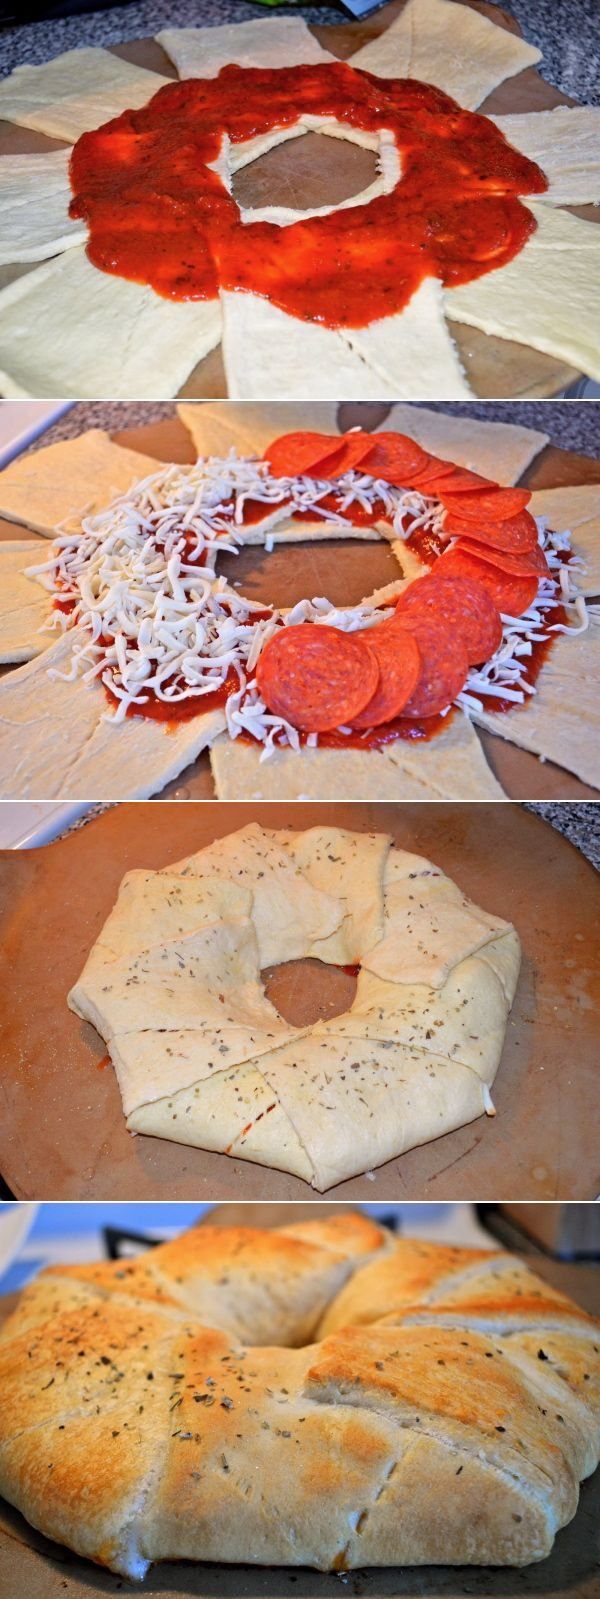 Pizza Ring---would cook better than log-shaped calzone